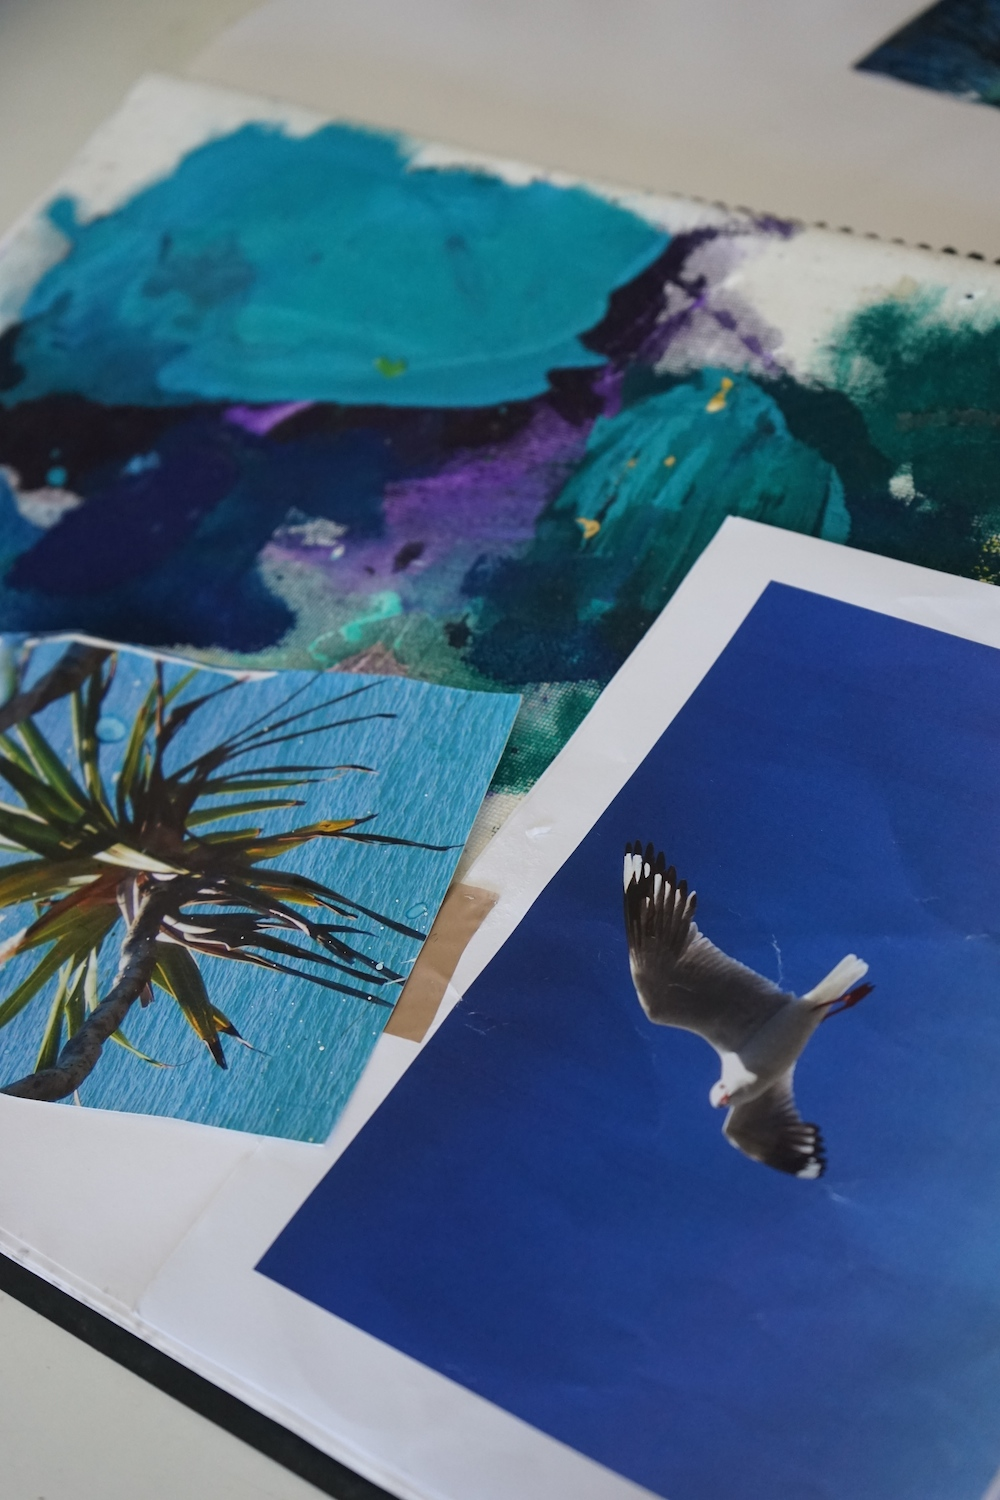 Keeping a visual diary - cut and paste all your inspiring pics.